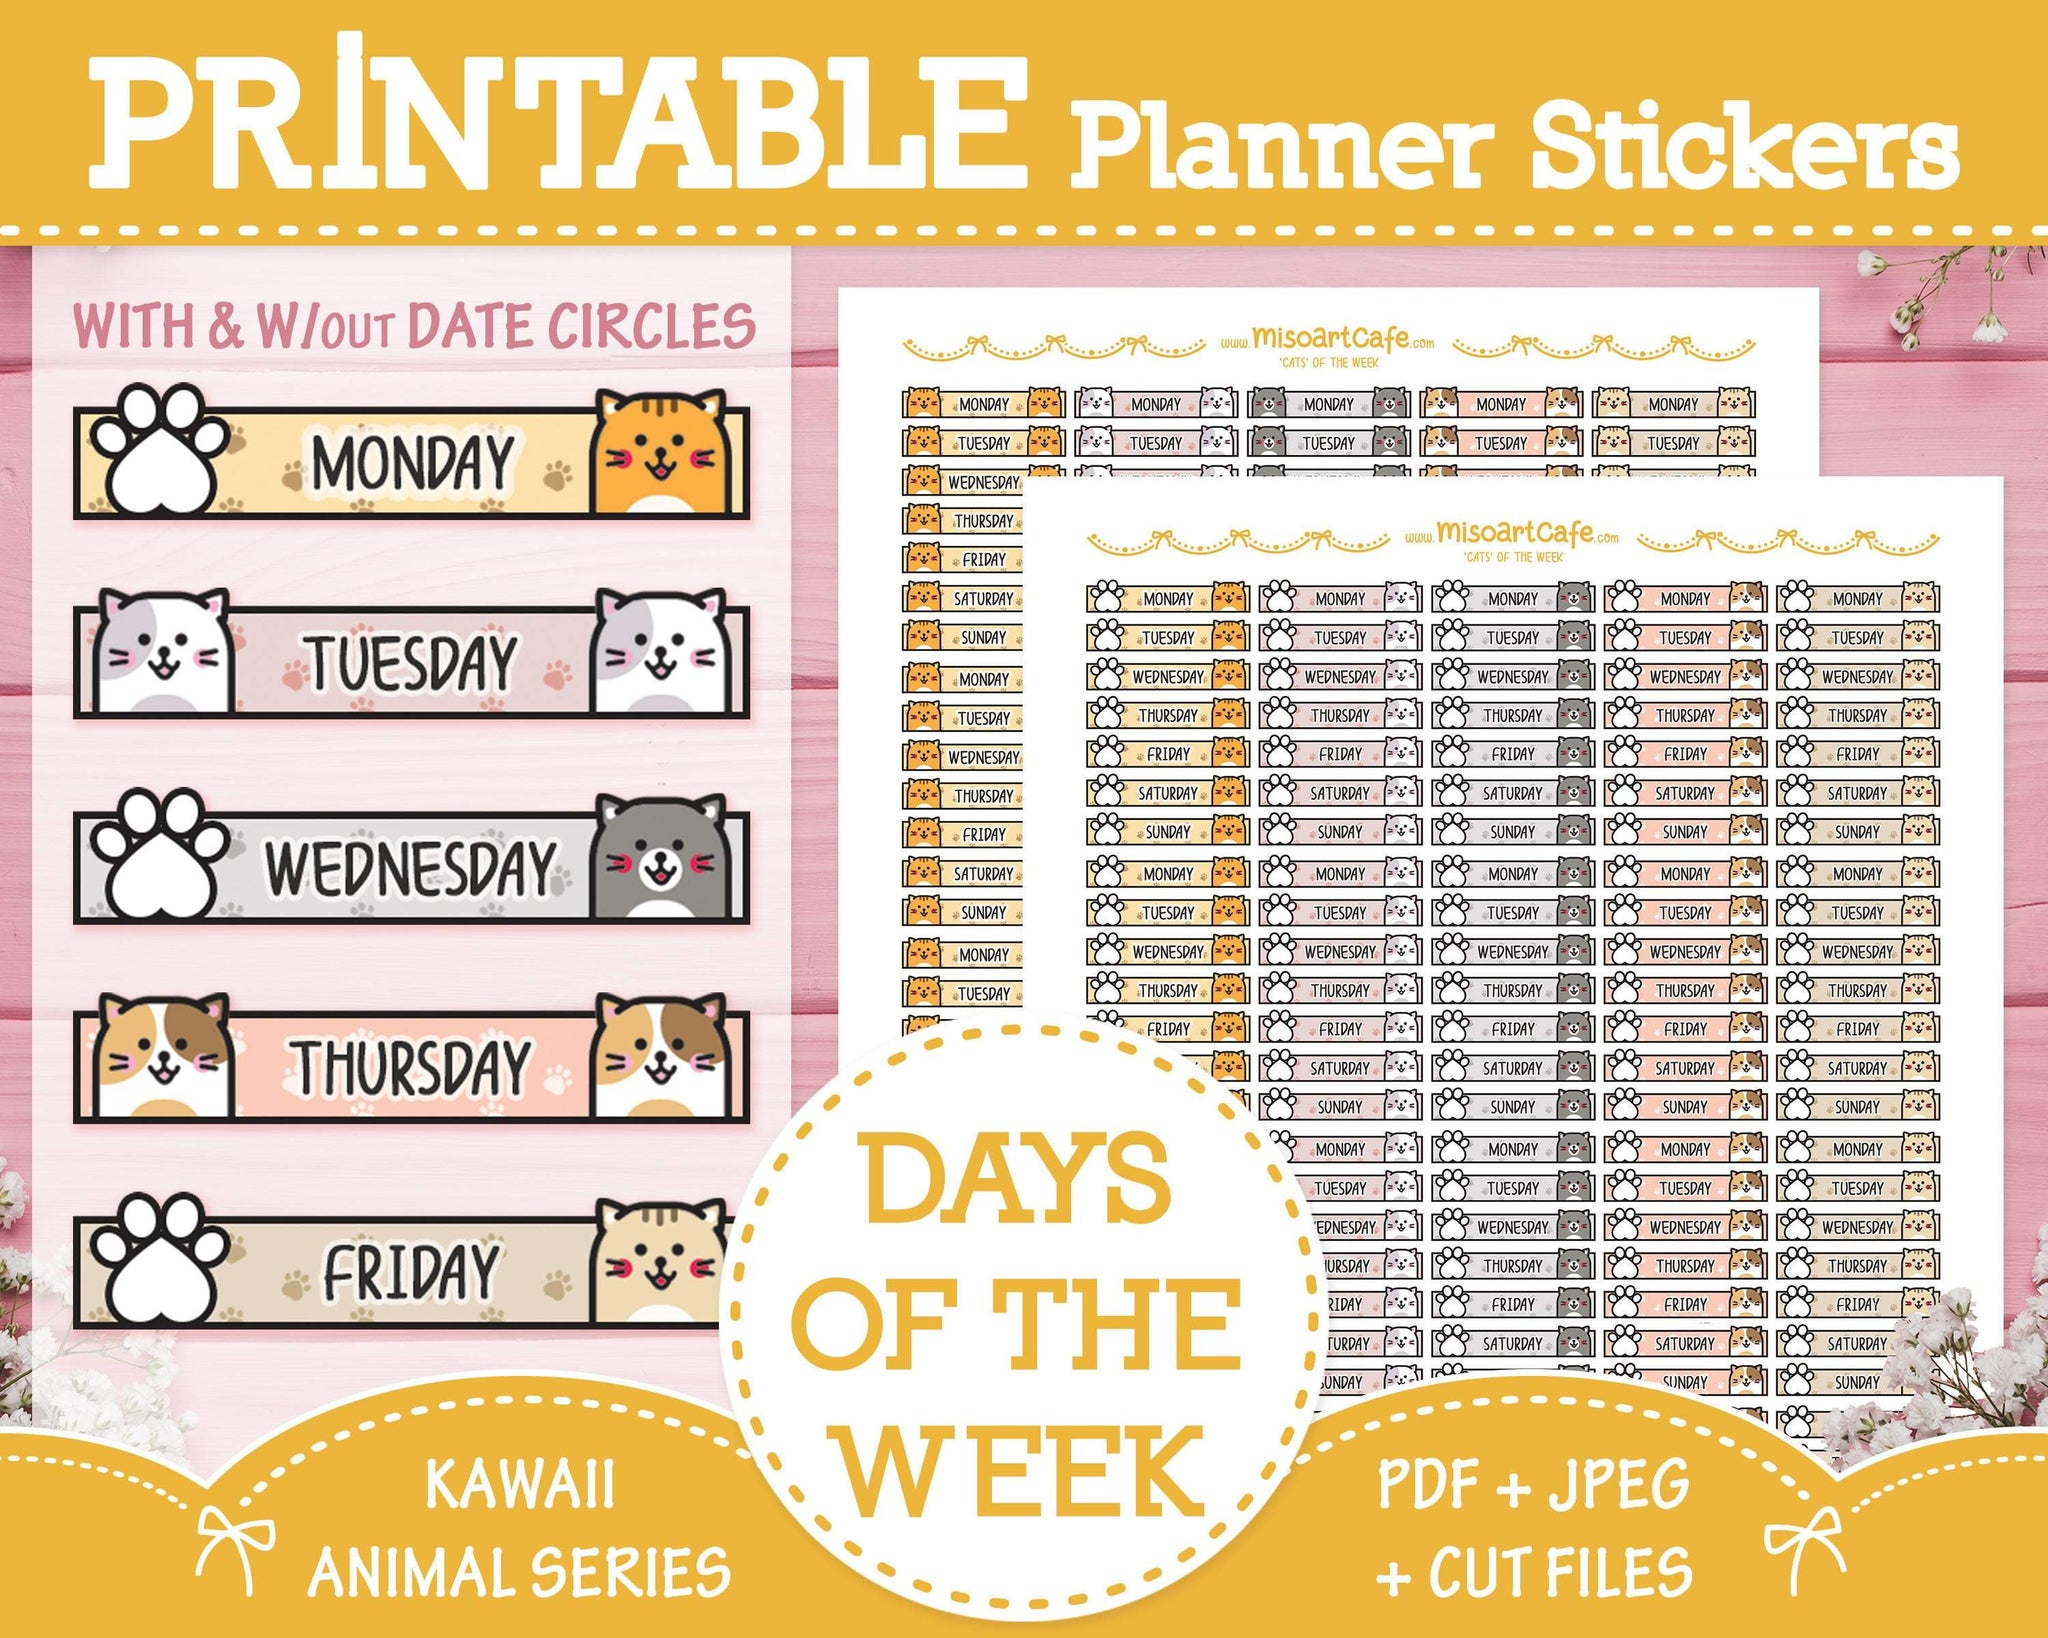 Printable Days of the Week (Cat) - Kawaii Animal Planner Stickers - Miso Art Cafe